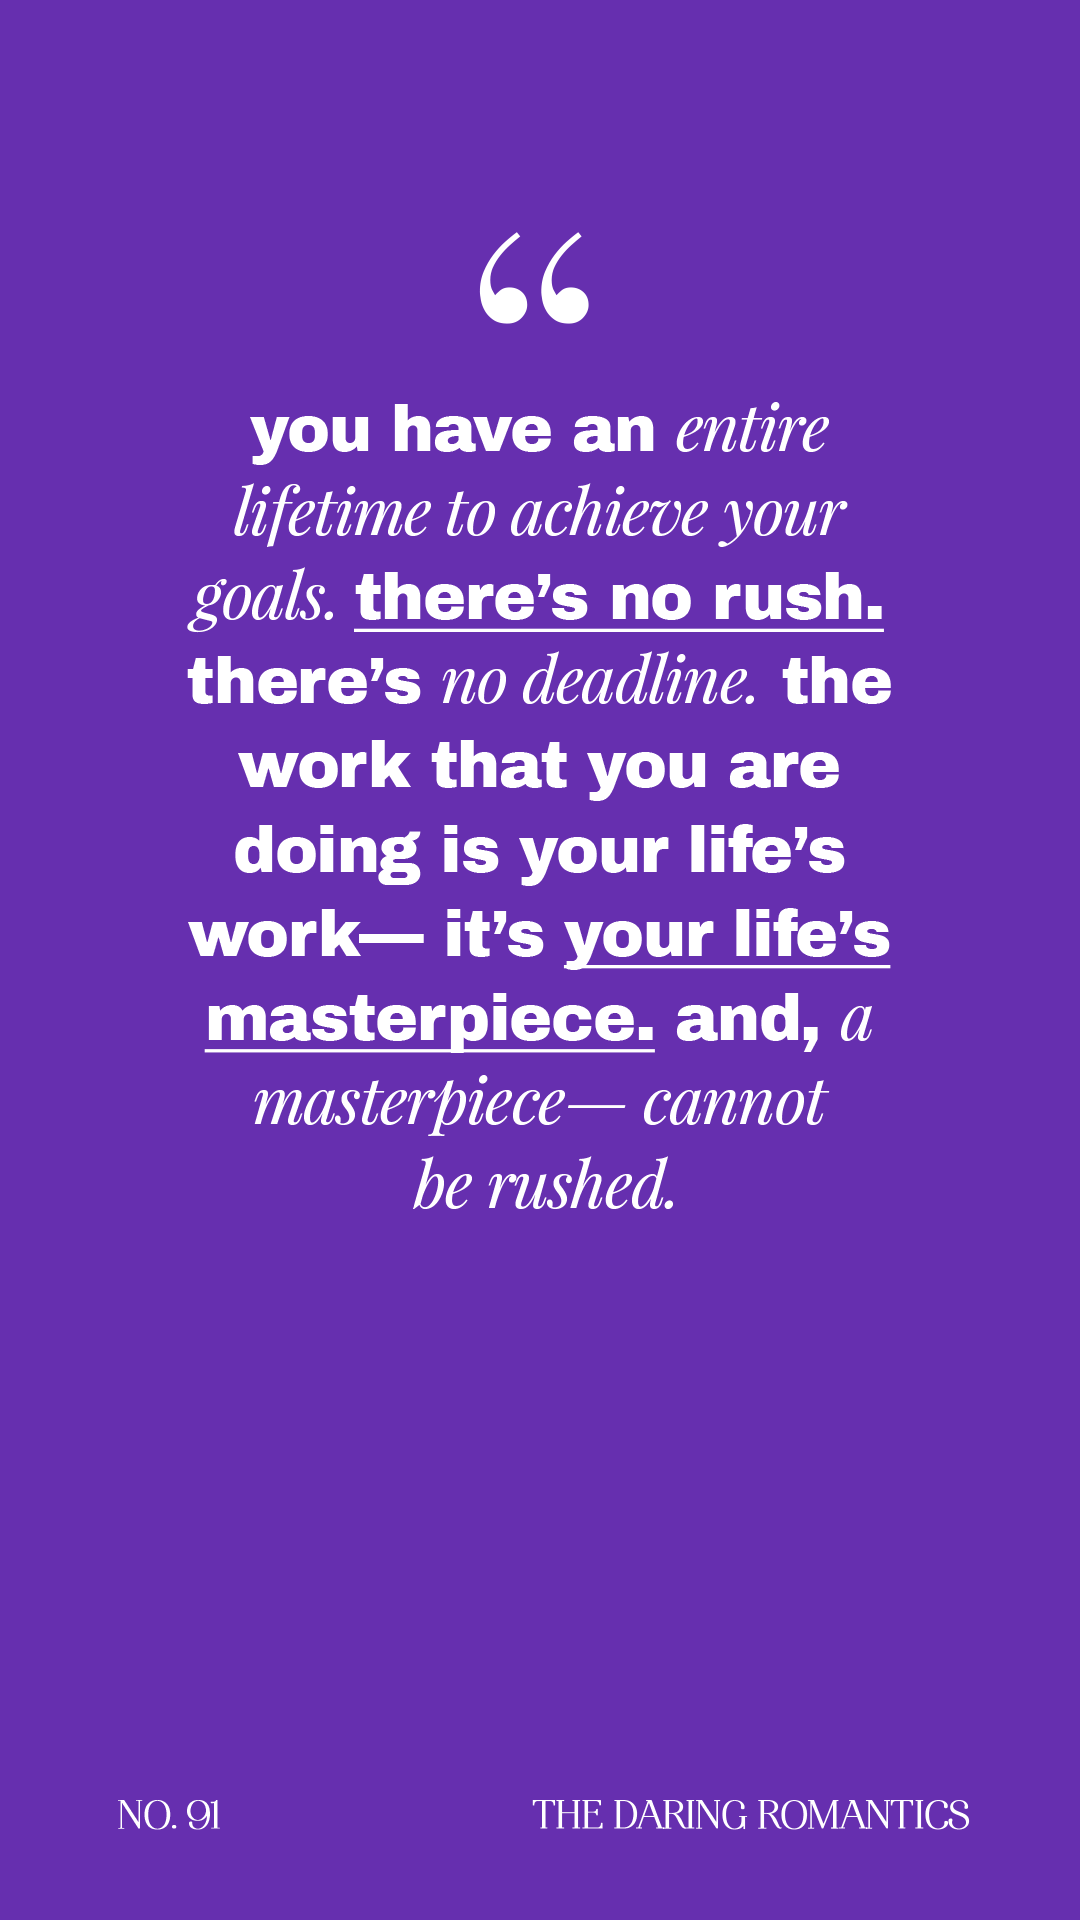 QUOTE by Lindsey Eryn of The Daring Romantics Podcast (IG: @lindseyeryn, @thedaringromantics)  -  quote, positive quote, positive life quotes, achieve our goals, dream quote, business quotes, quotes for entrepreneurs, girl boss quotes, masterpiece quotes, inspiring quotes, quotes to live by, there's no deadline quotes, podcasts, business podcast, lifestyle podcast, girl boss podcasts, affirmations, positive meditations, positive affirmations, daily meditations